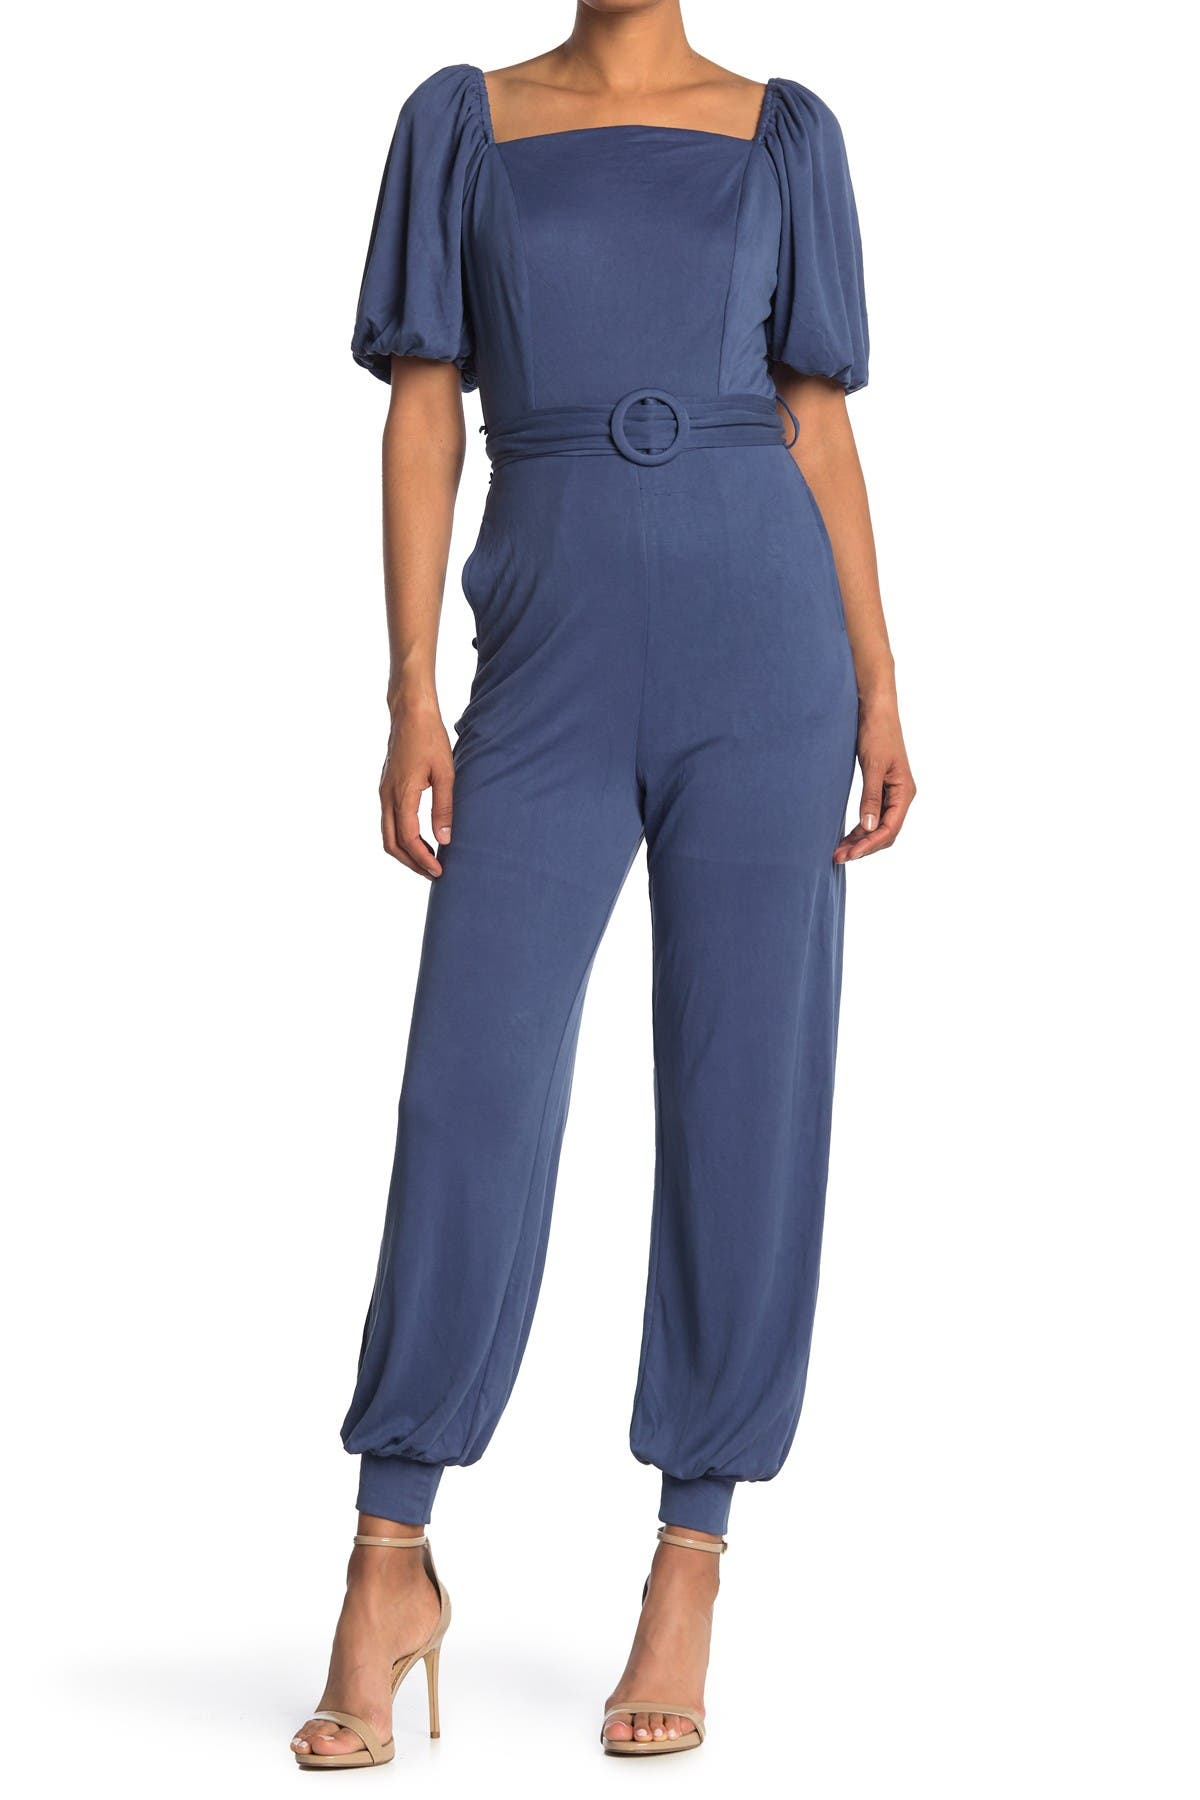 ONE ONE SIX   Puff Sleeve Belted Jogger Jumpsuit   Nordstrom Rack